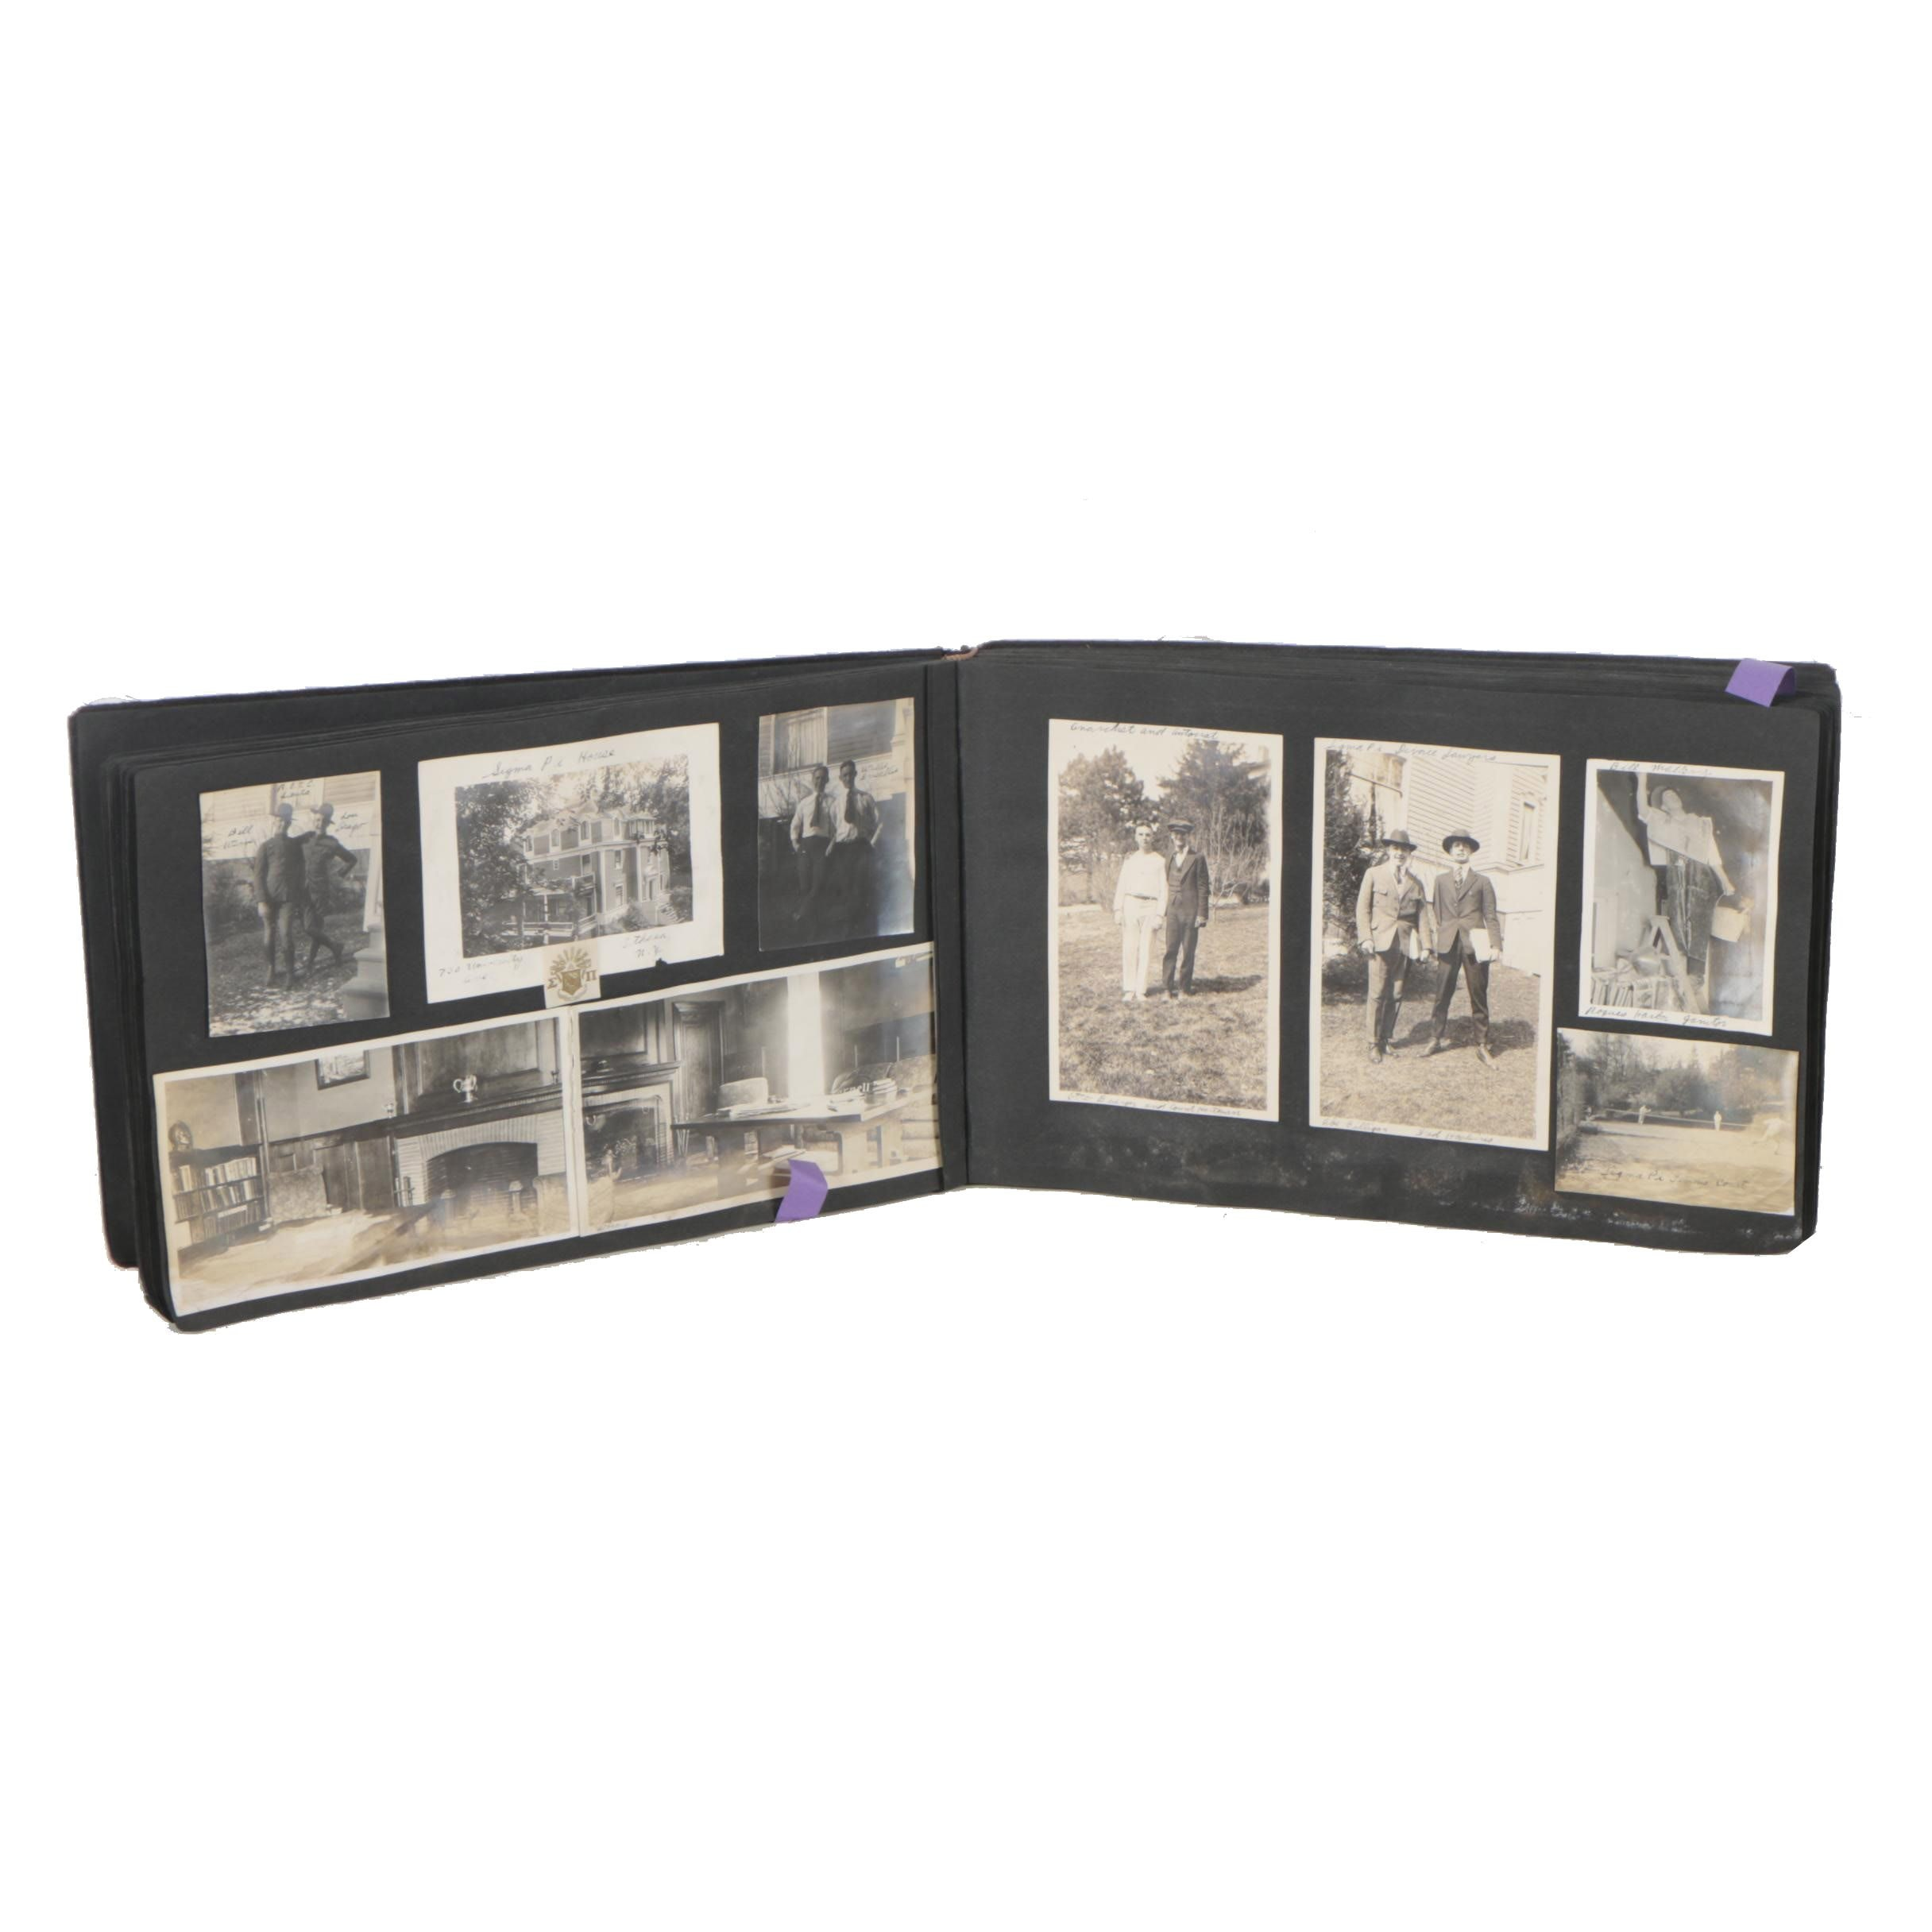 Early 20th Century Gelatin Silver Print Photo Album